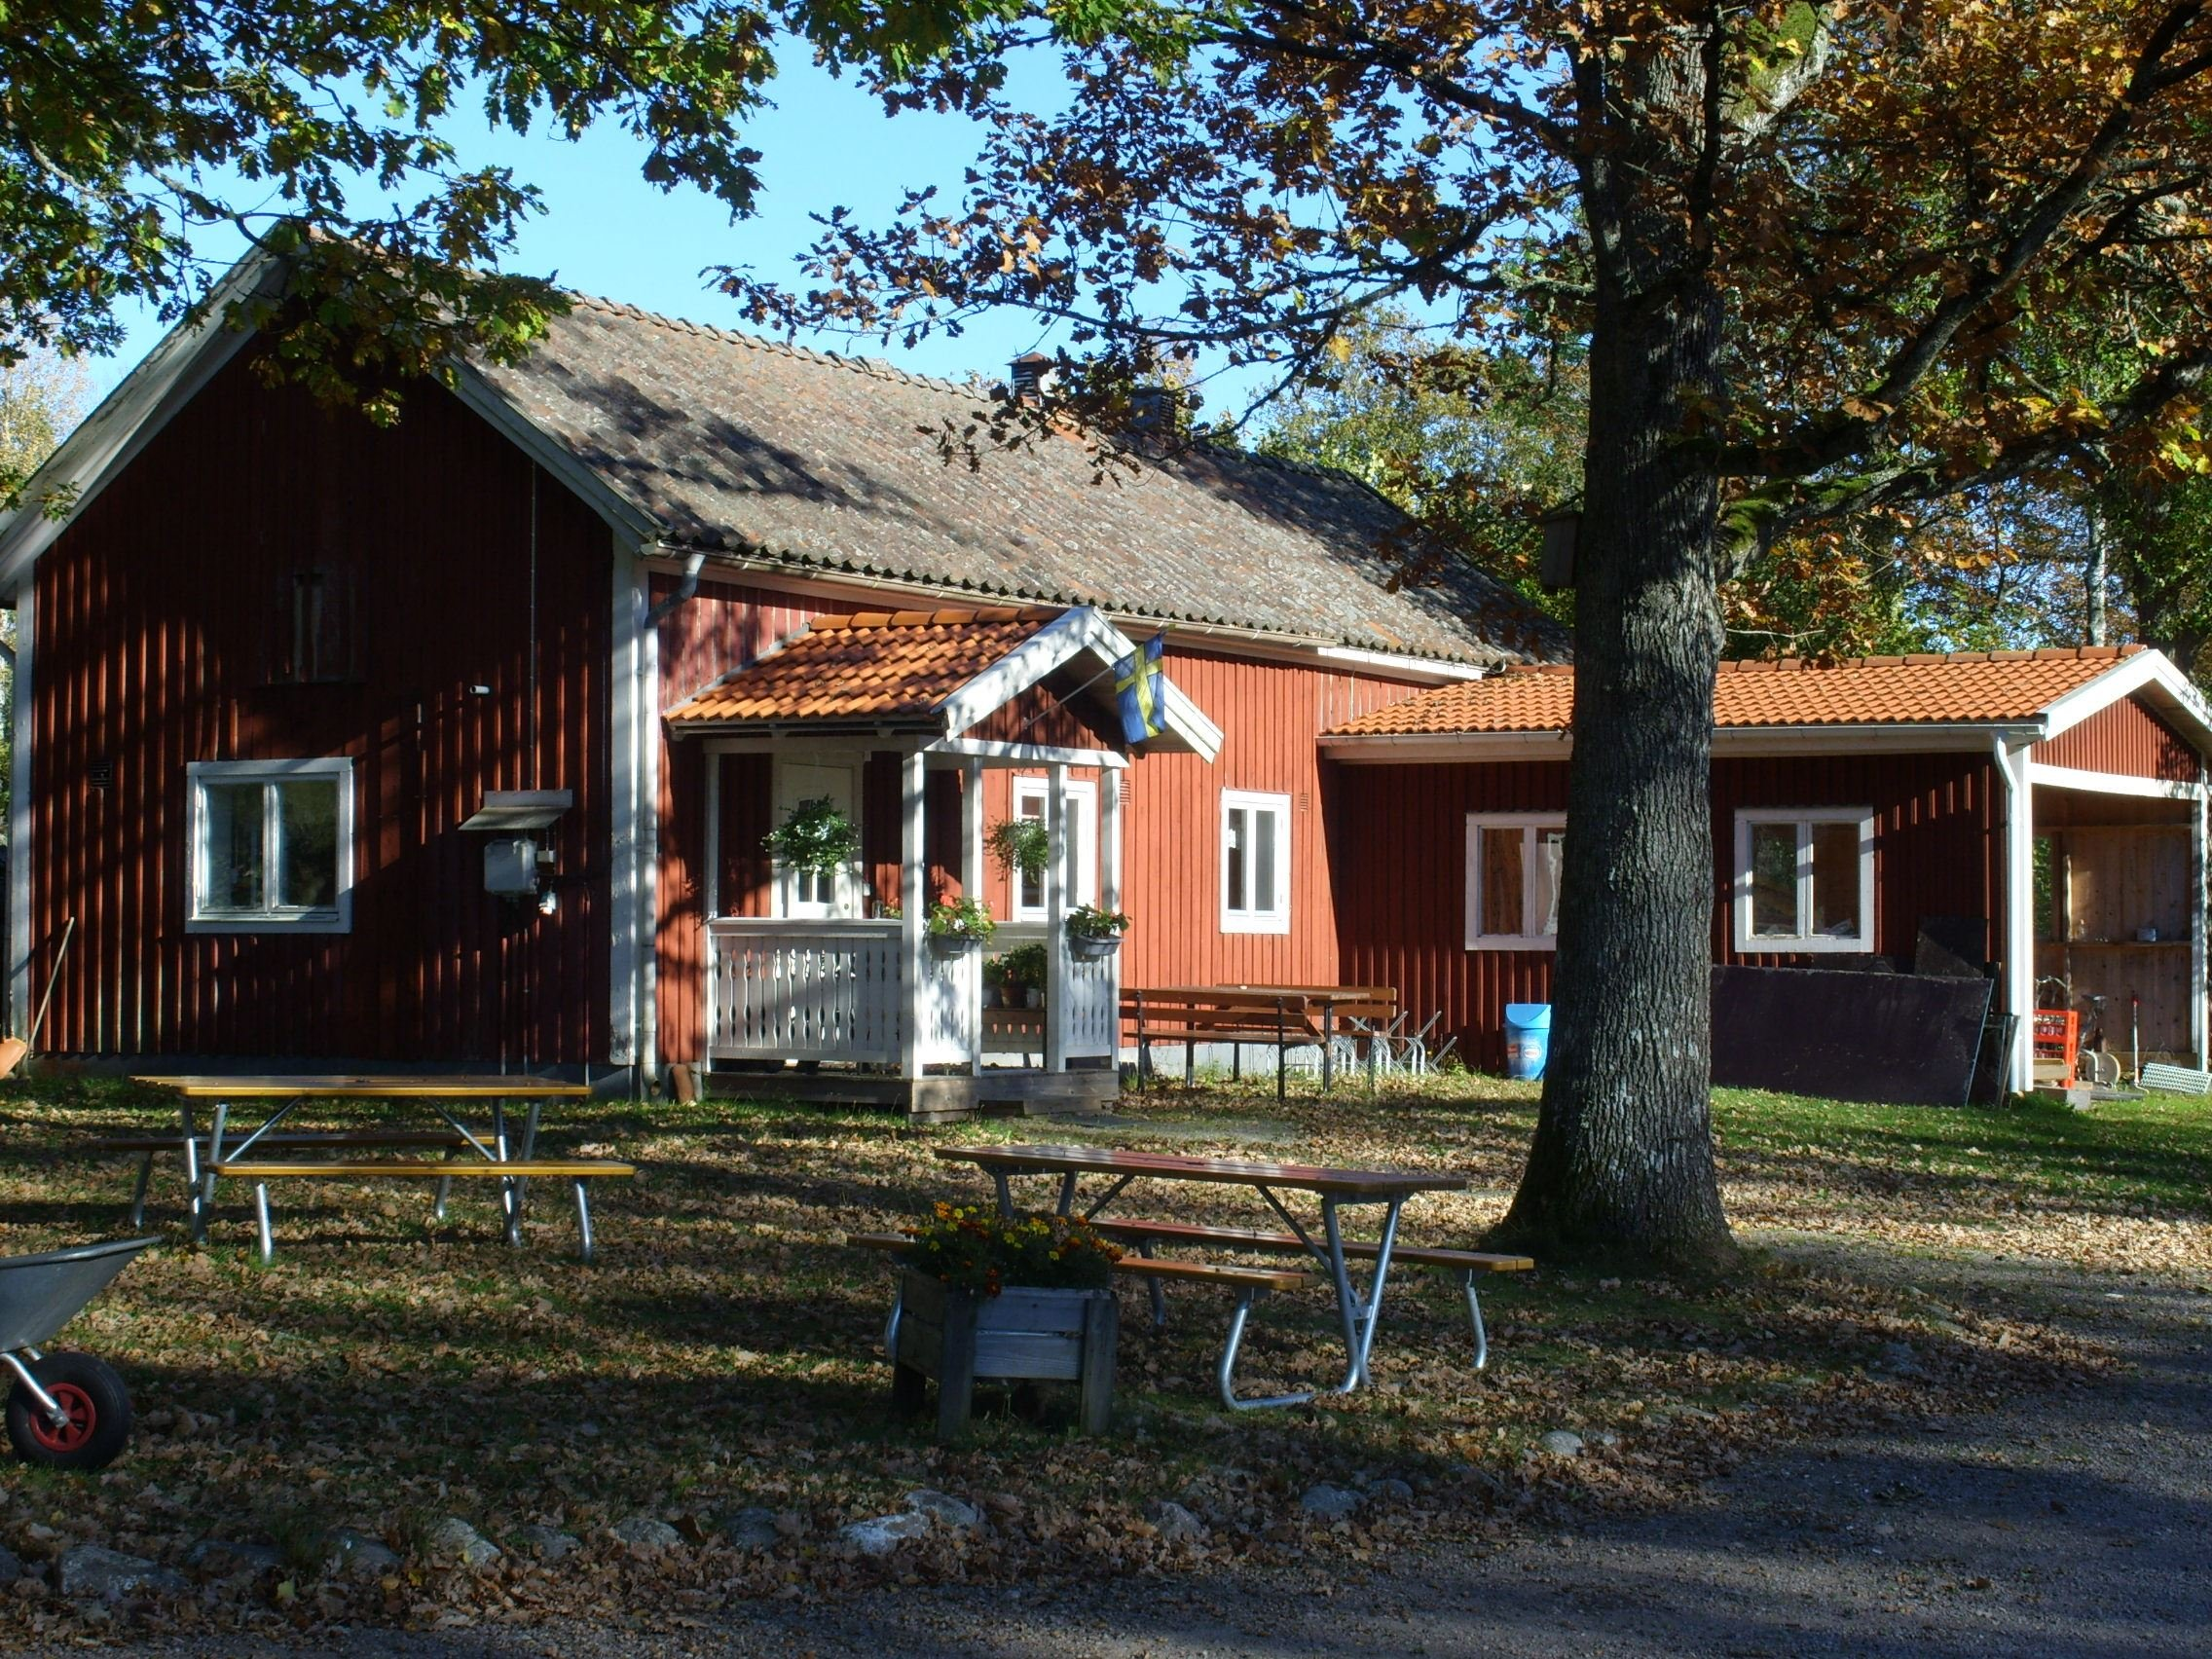 Moshults SVIF Hostel